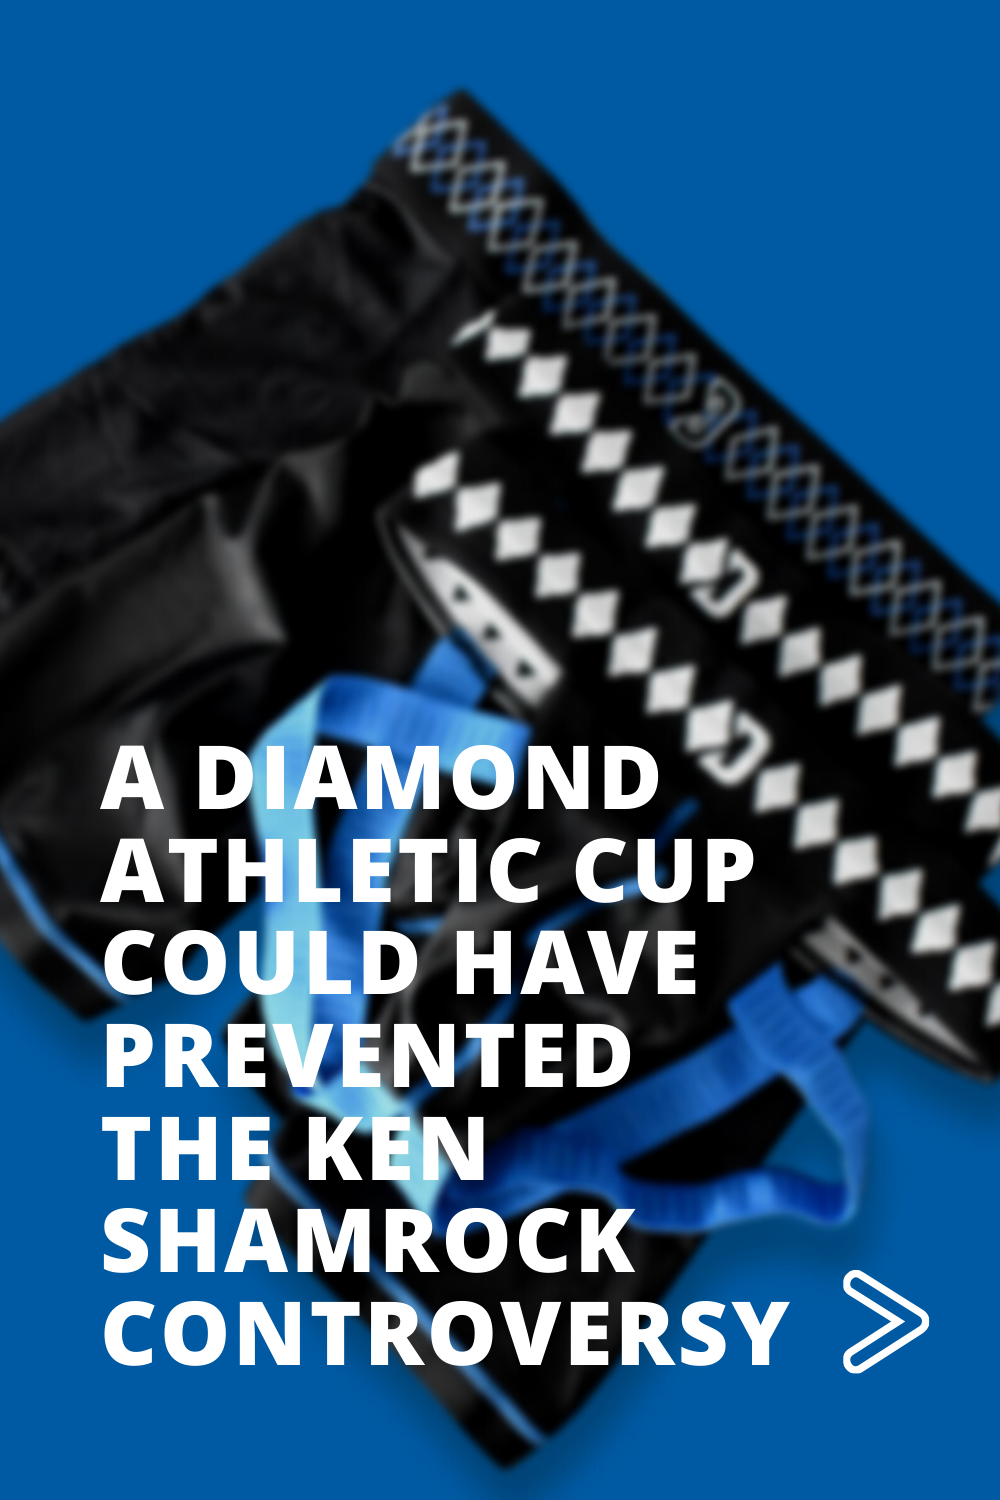 A Diamond Athletic Cup Could Have Prevented the Ken Shamrock Controversy